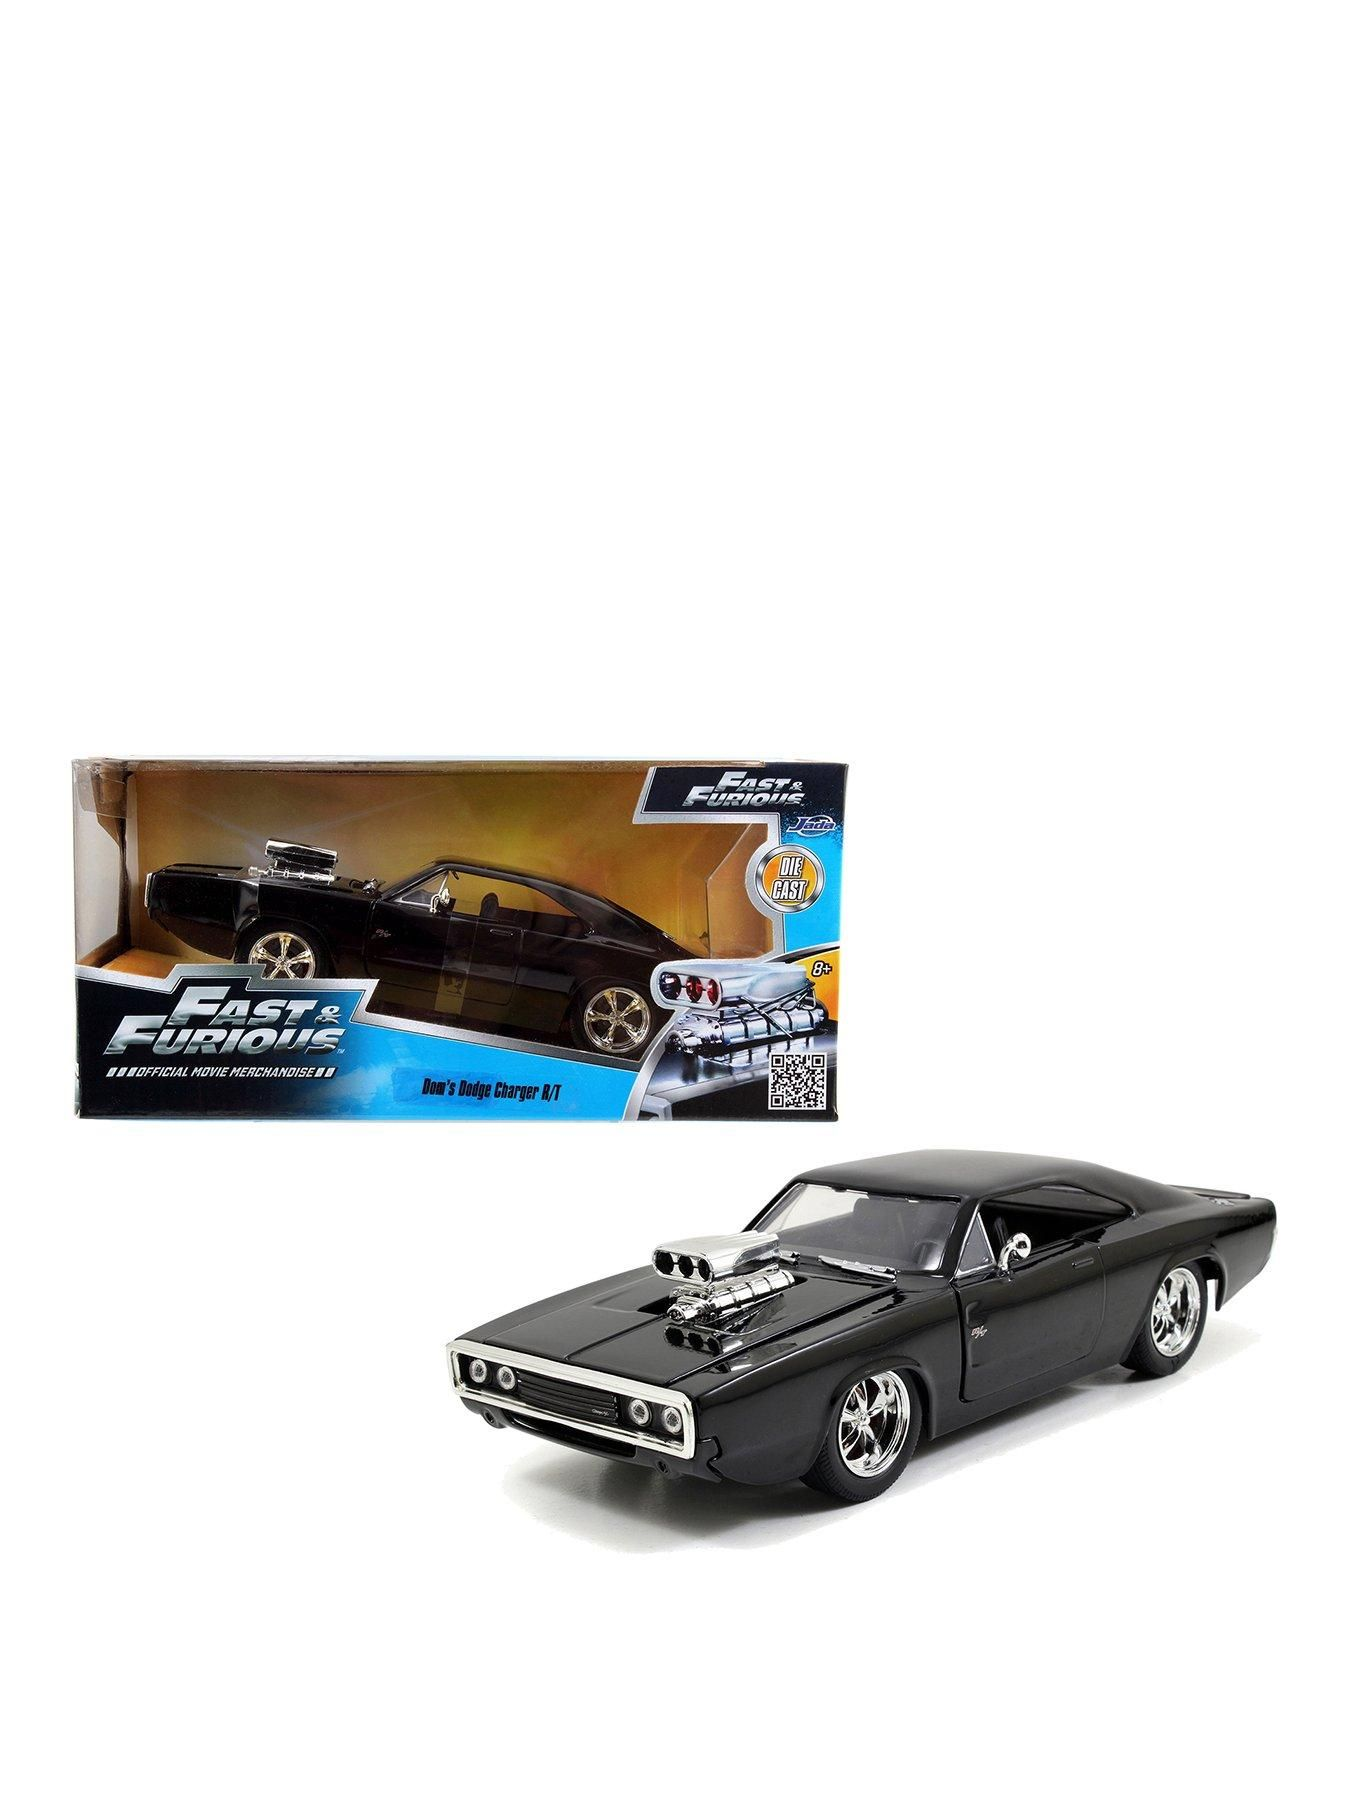 Fast Furious Rc 1970 Dodge Charger 1 24 In One Colour Dodge Charger Fashion Branding All Brands